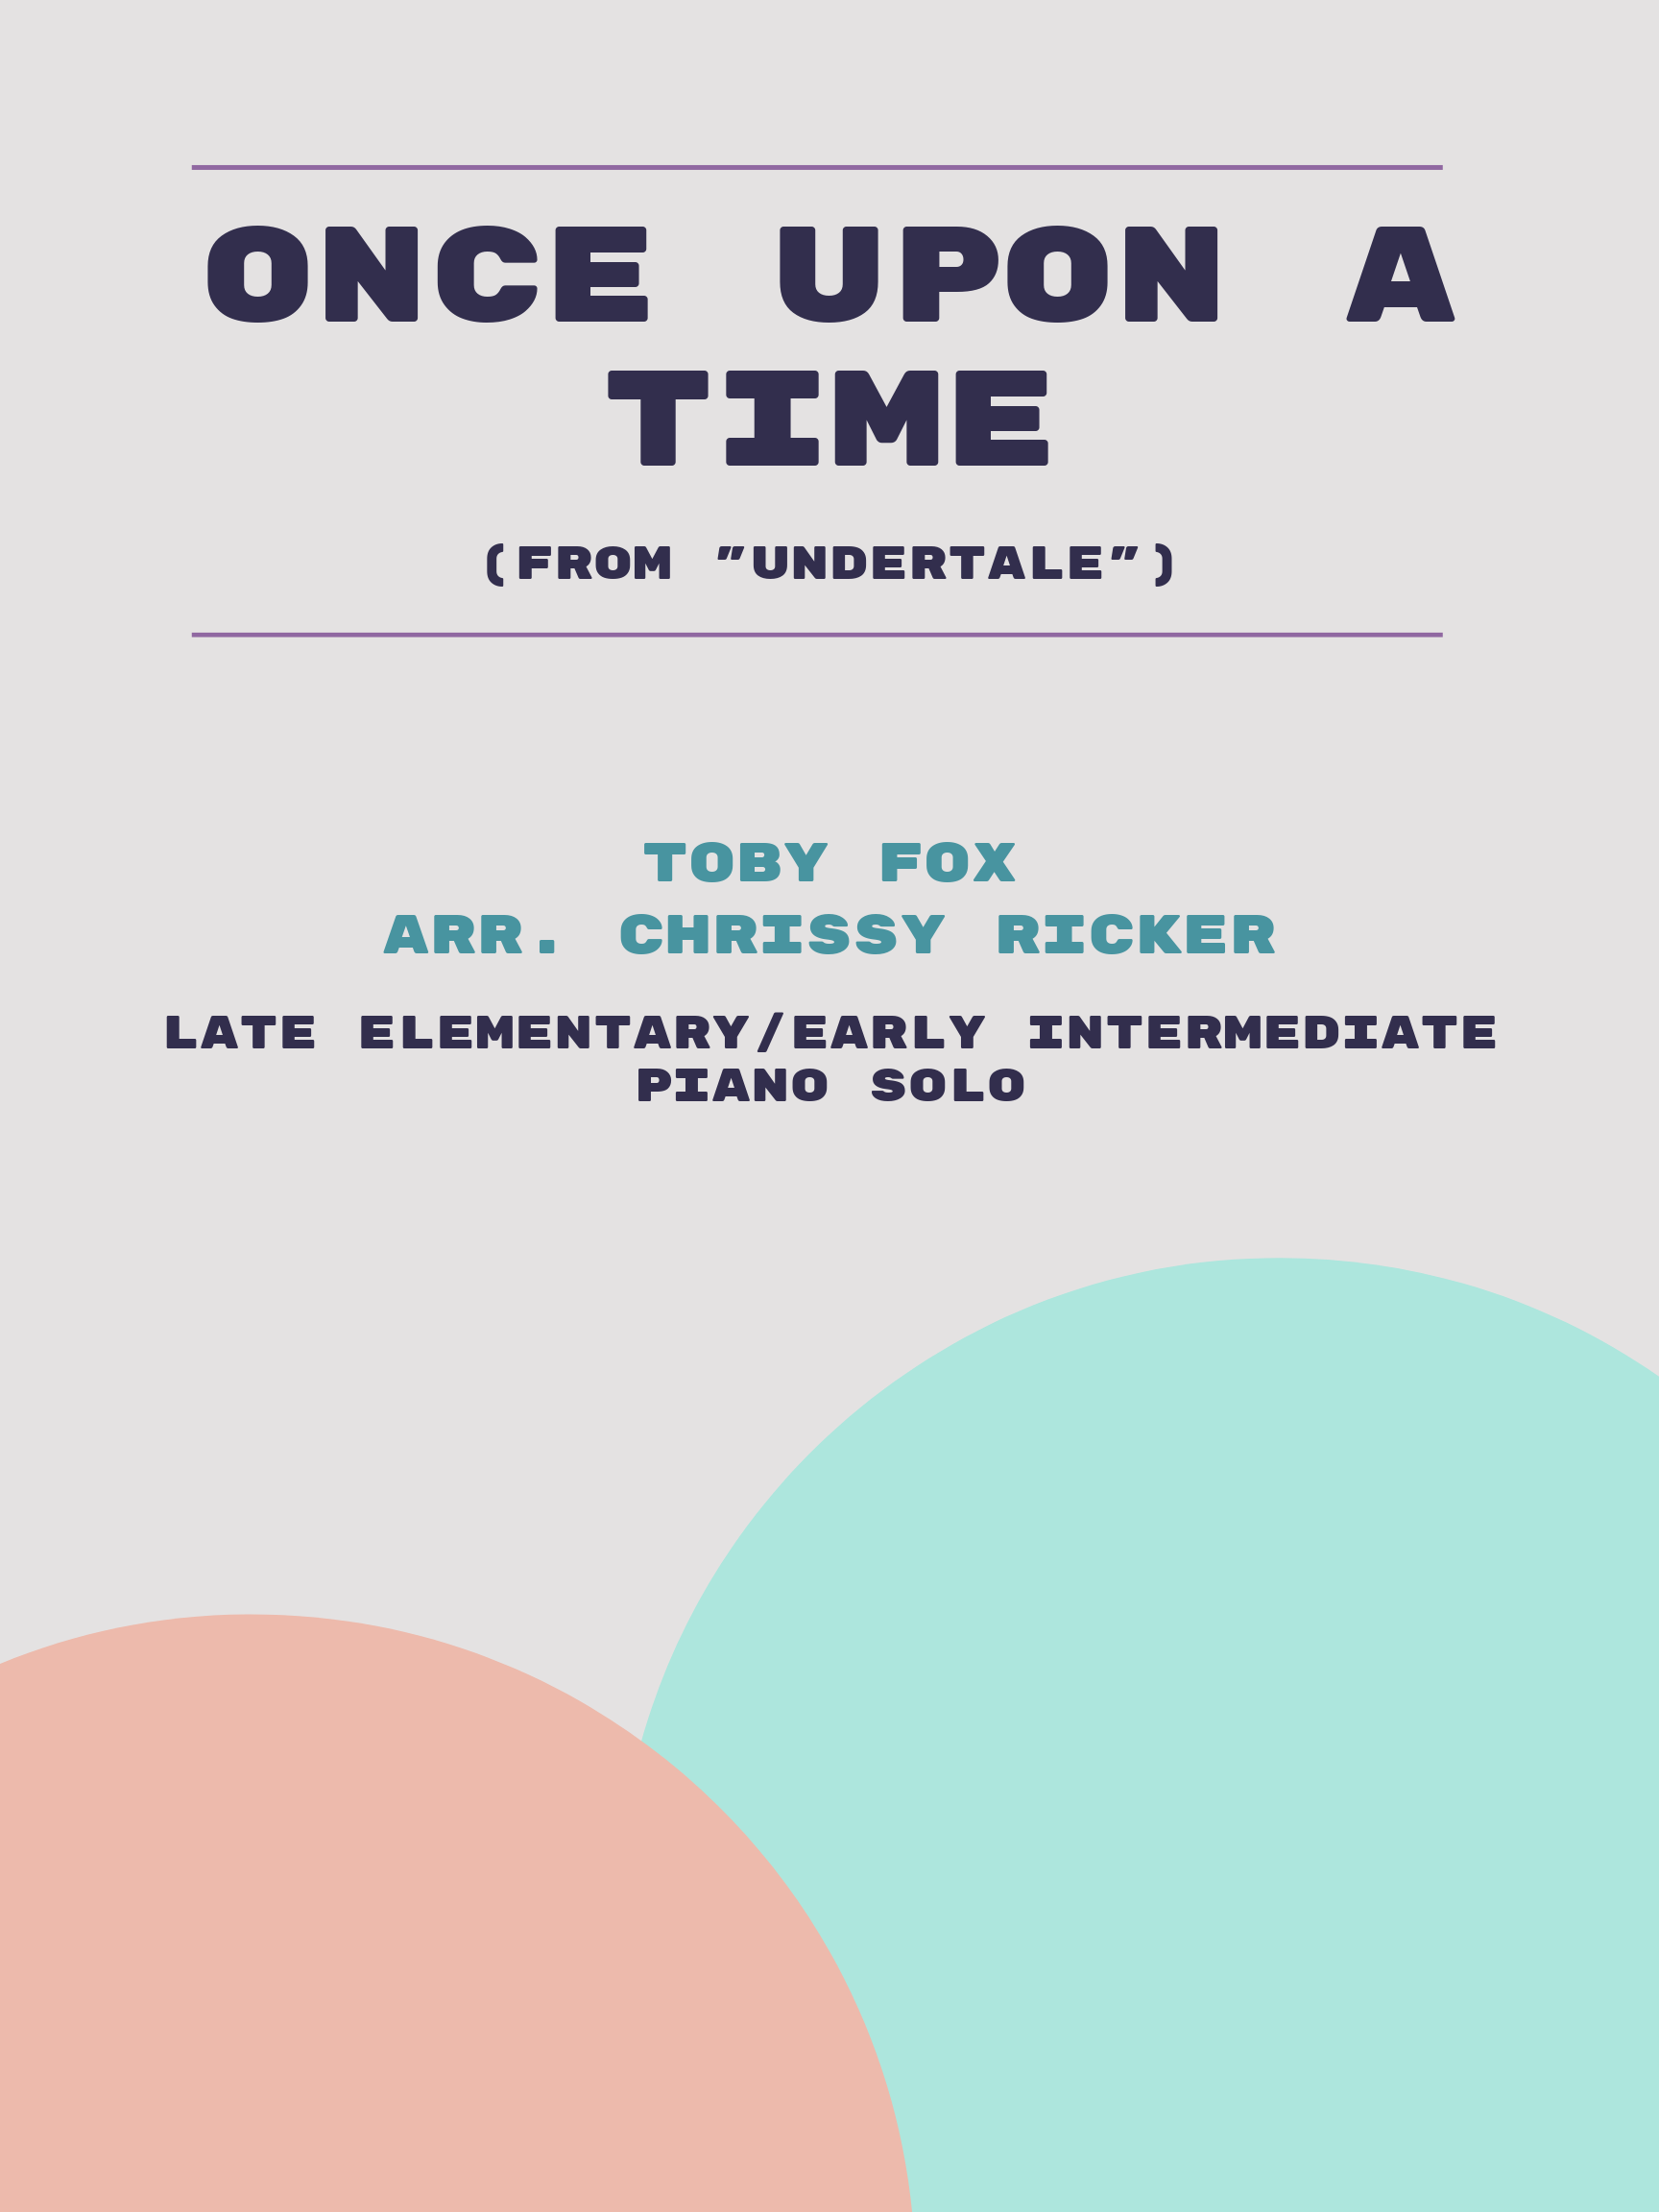 Once Upon a Time by Toby Fox